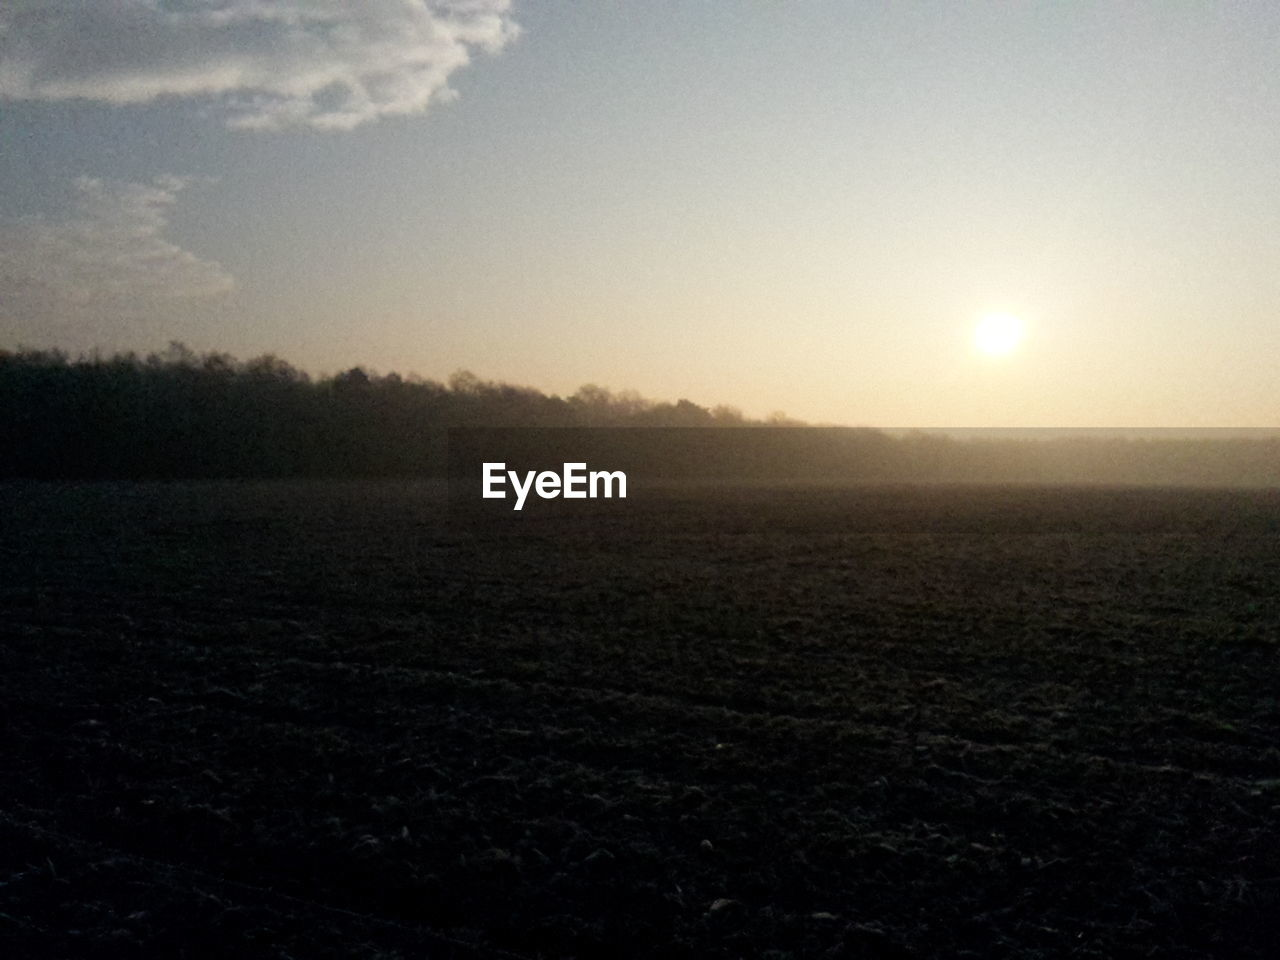 landscape, tranquility, field, nature, tranquil scene, sun, agriculture, scenics, beauty in nature, no people, sunset, outdoors, sunlight, sky, rural scene, growth, day, tree, plowed field